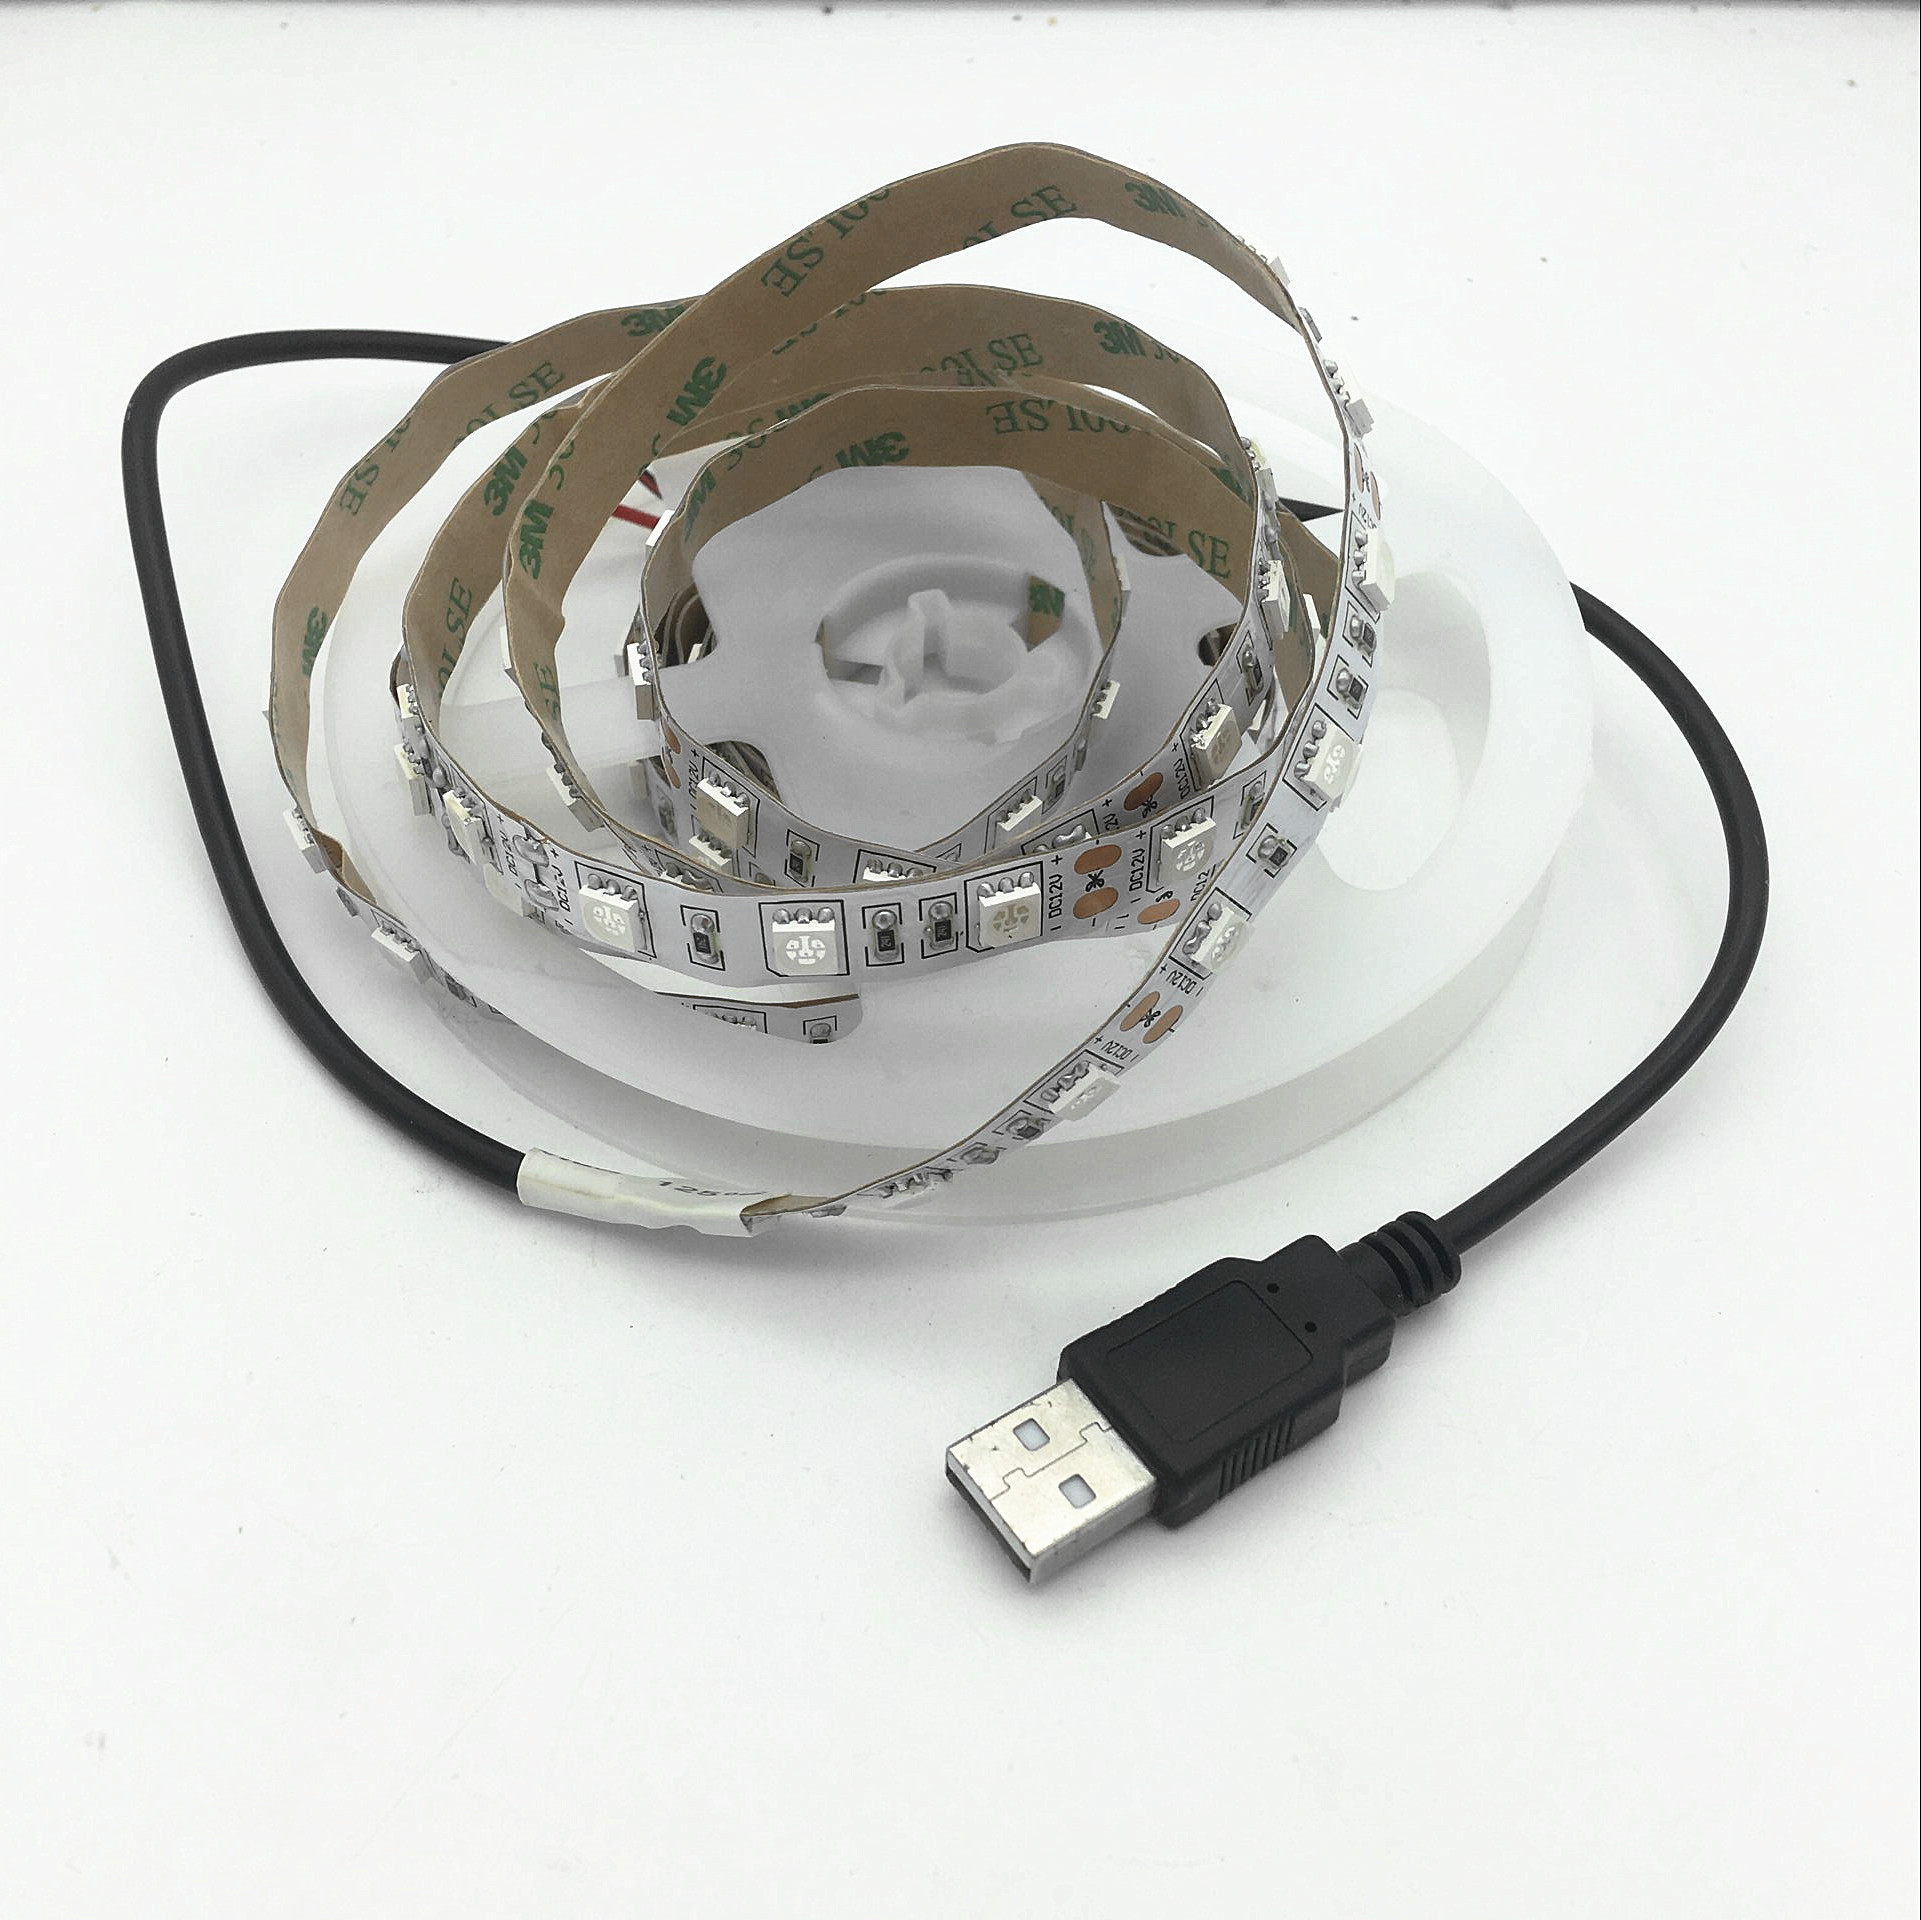 0.5m 1m 1.5m 2m 3m 5m UV Ultraviolet LED Strip Light Nowaterproof DC5V Flexible SMD <font><b>5050</b></font> 30leds/m LED Diode Tape With <font><b>USB</b></font> Wiren image